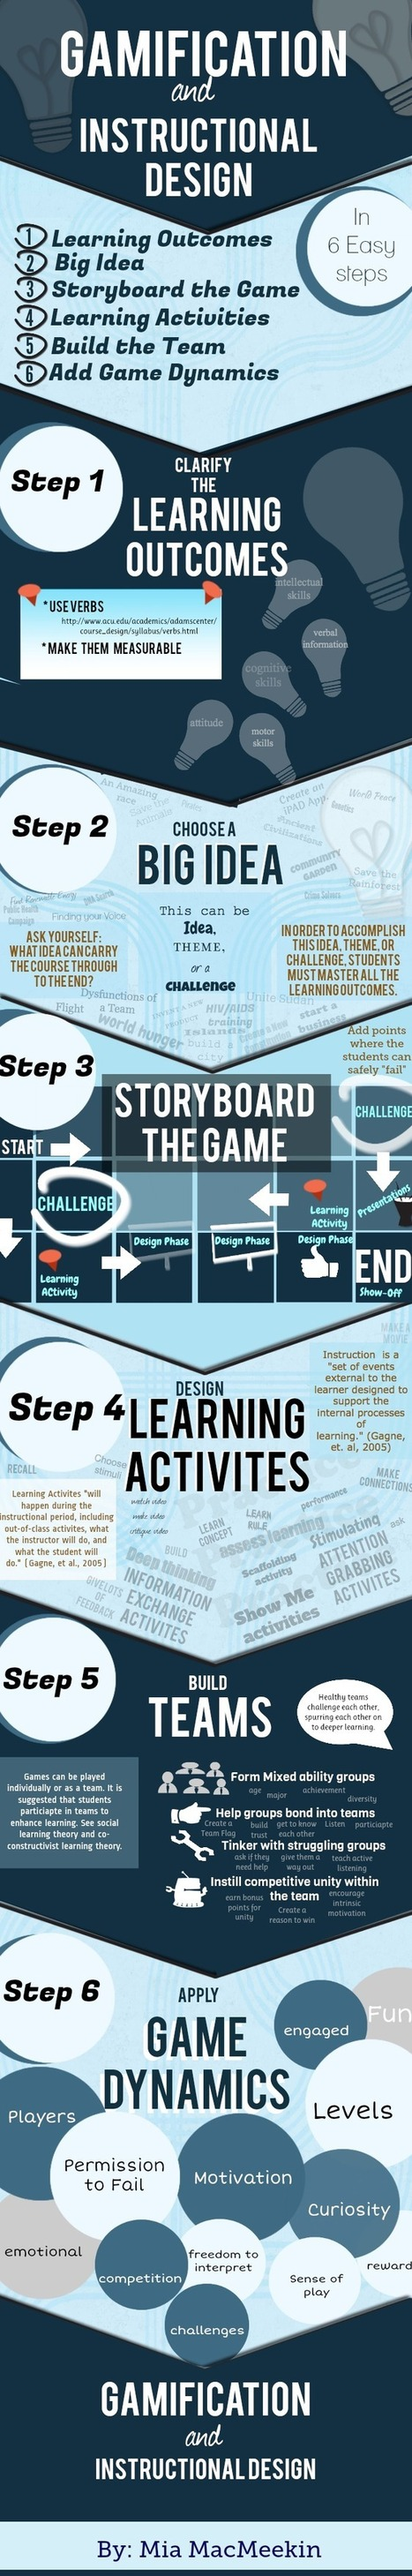 6 Easy Steps to Use Gamification in Your Classroom ~ Educational Technology and Mobile Learning | Games and education | Scoop.it